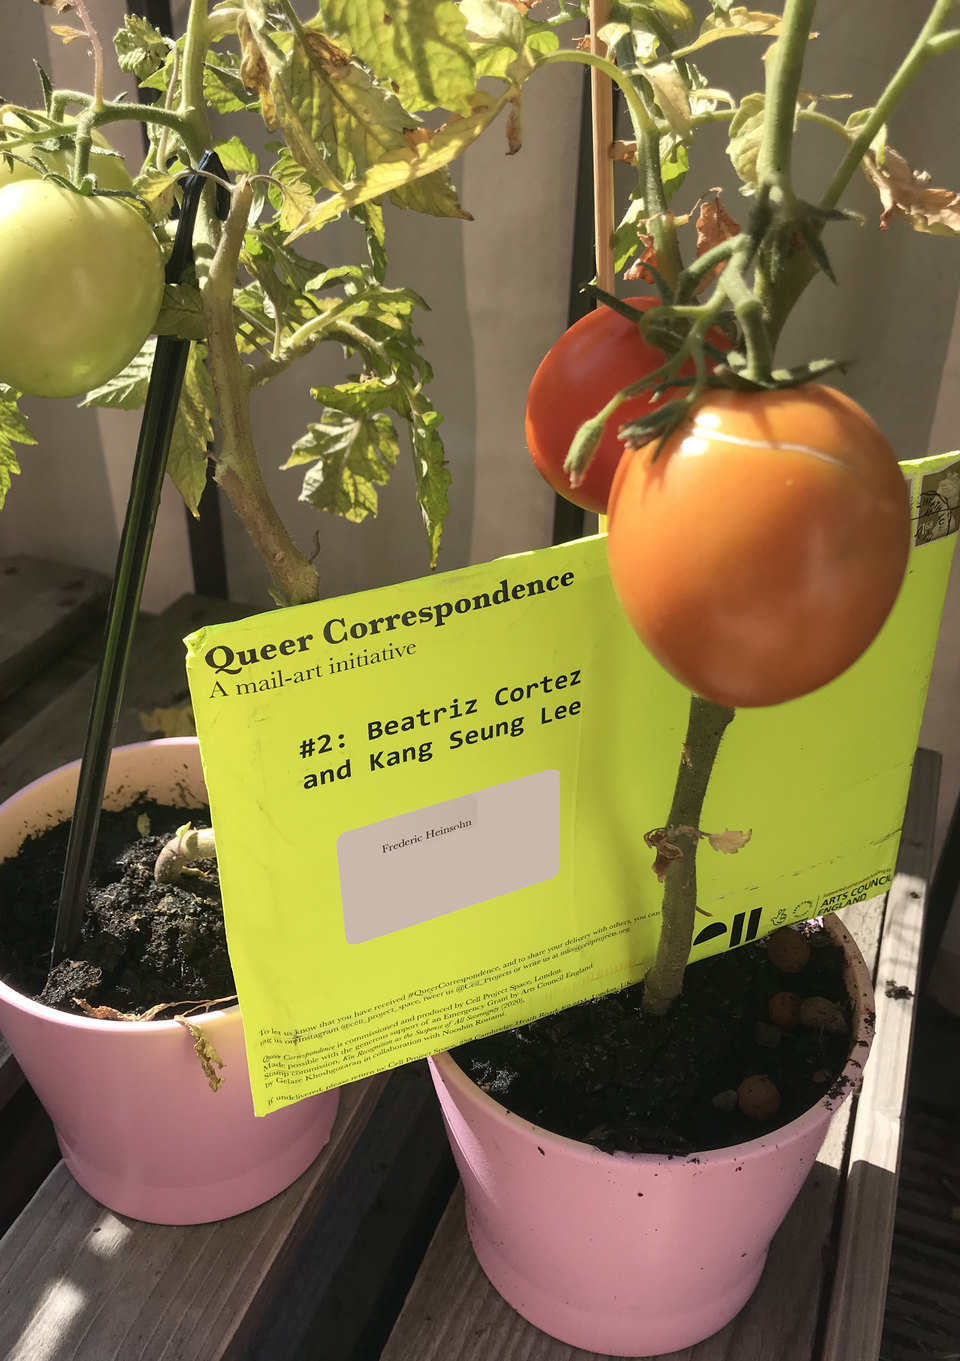 Beatriz Cortez & Kang Seung Lee, Queer Correspondence, 2020, Cell Project Space